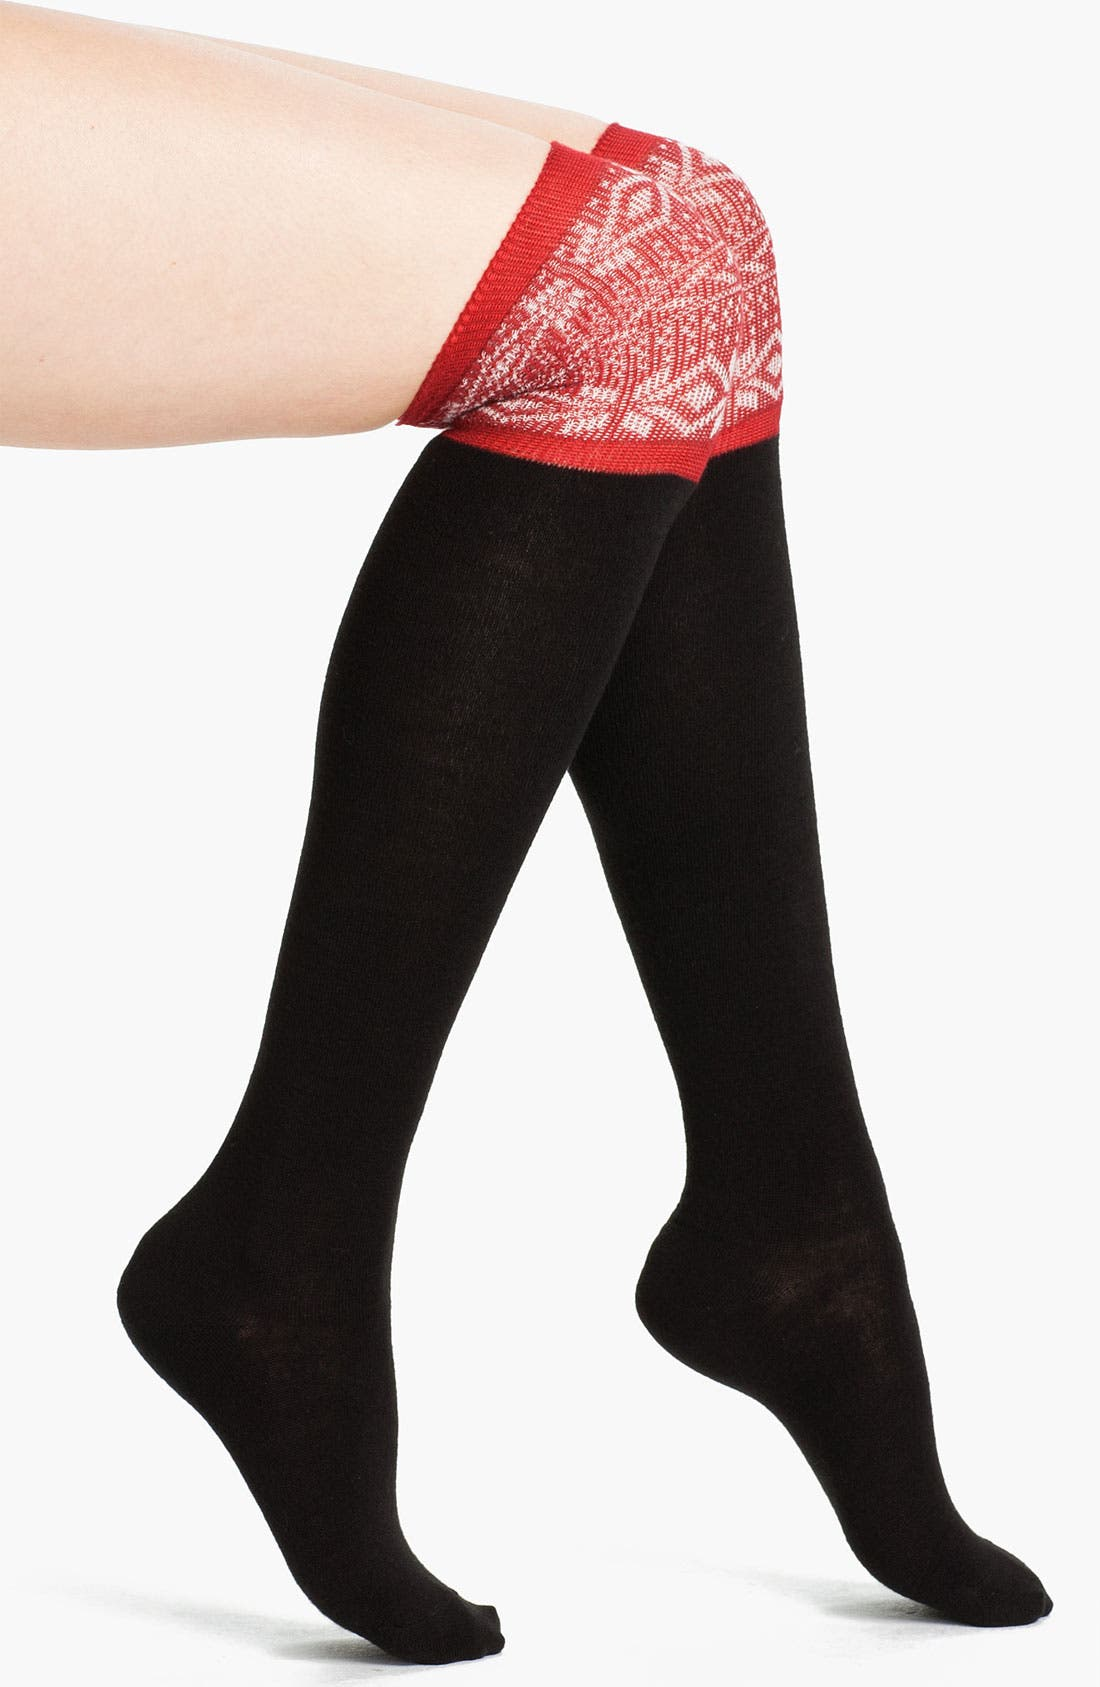 'Nordic' Over the Knee Socks,                         Main,                         color,